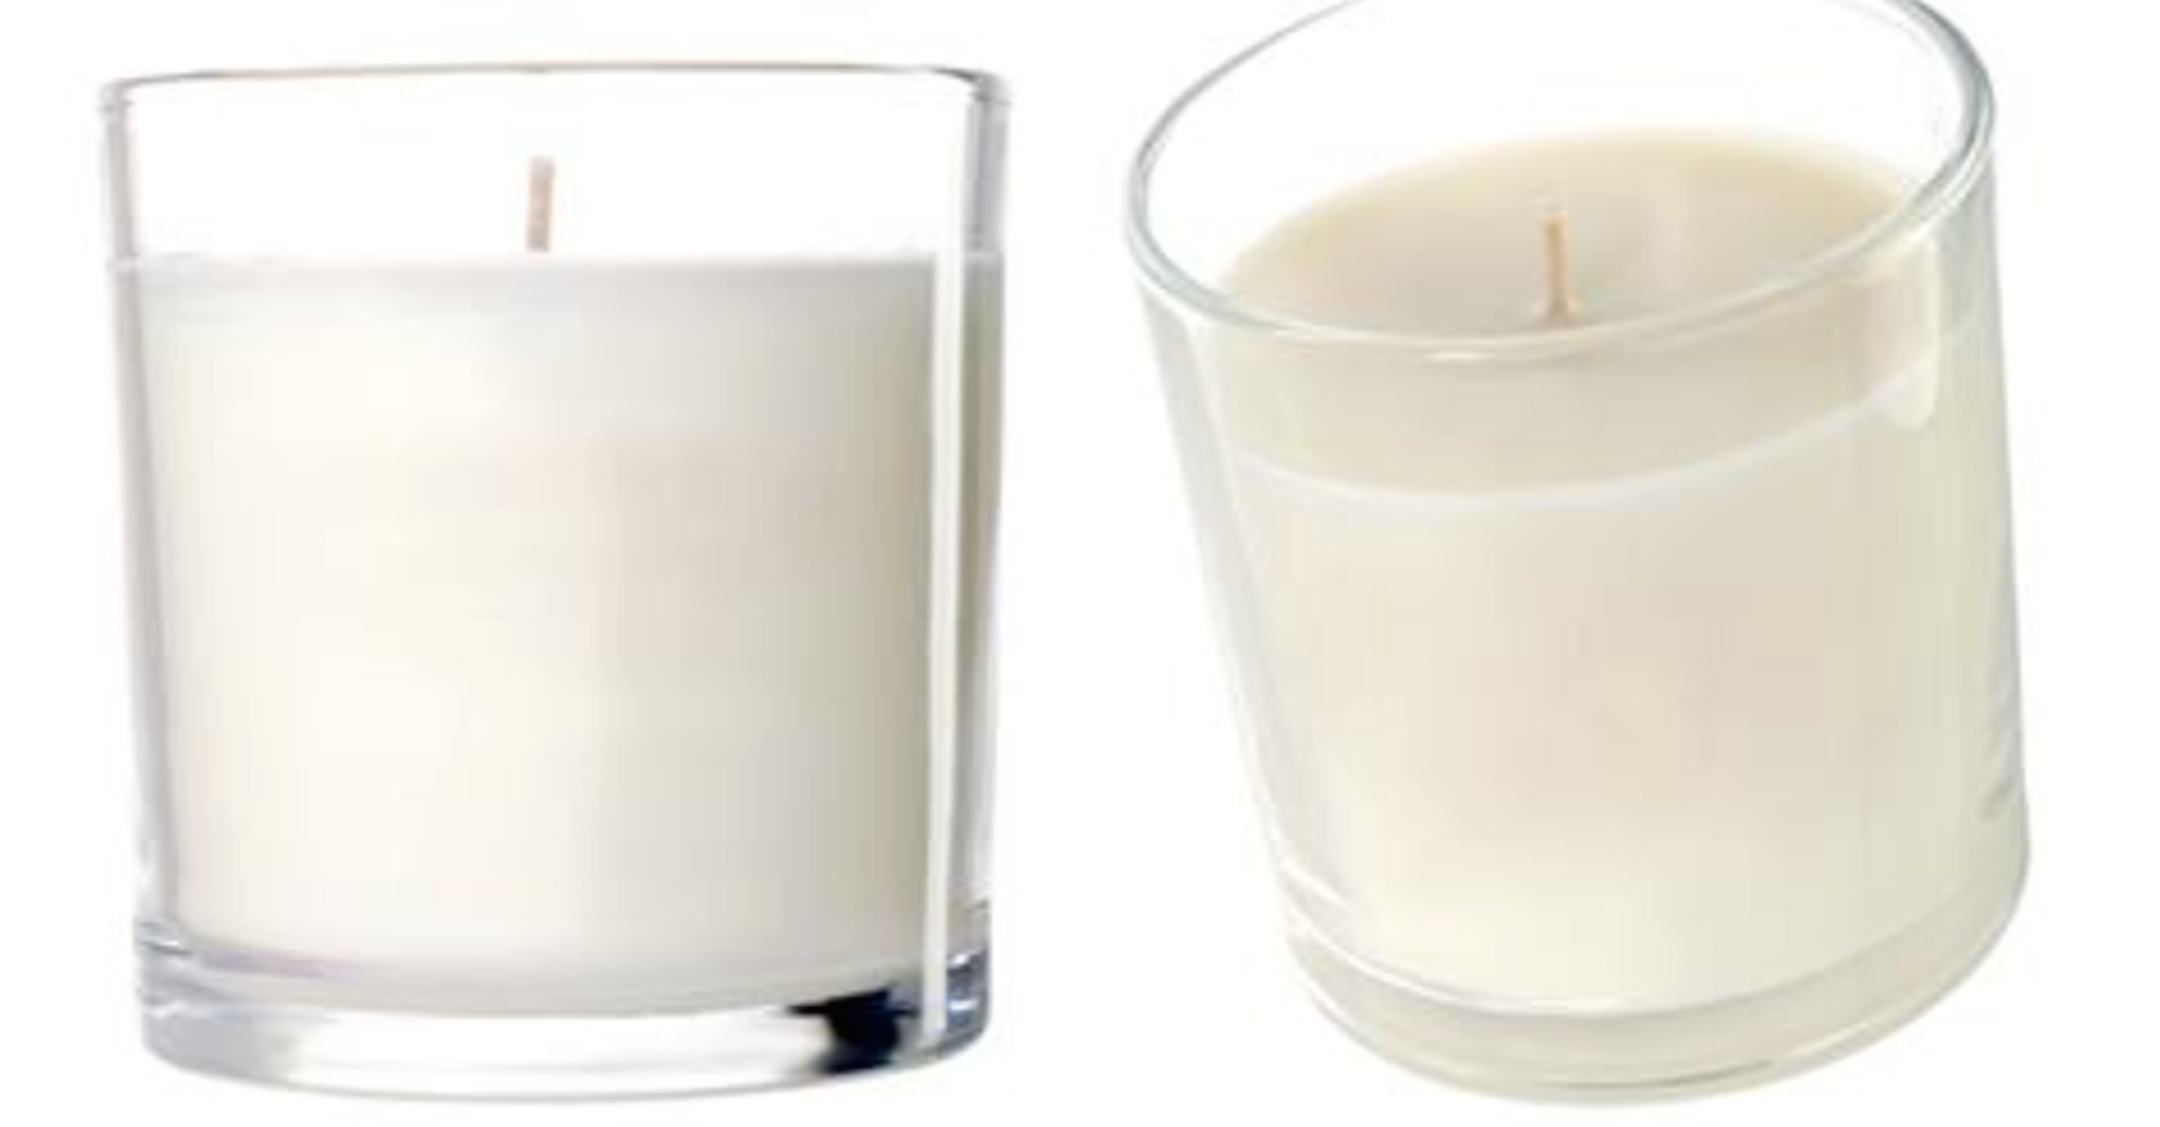 Natural Soy and Coconut Wax Candle Workshop - Sept. 25